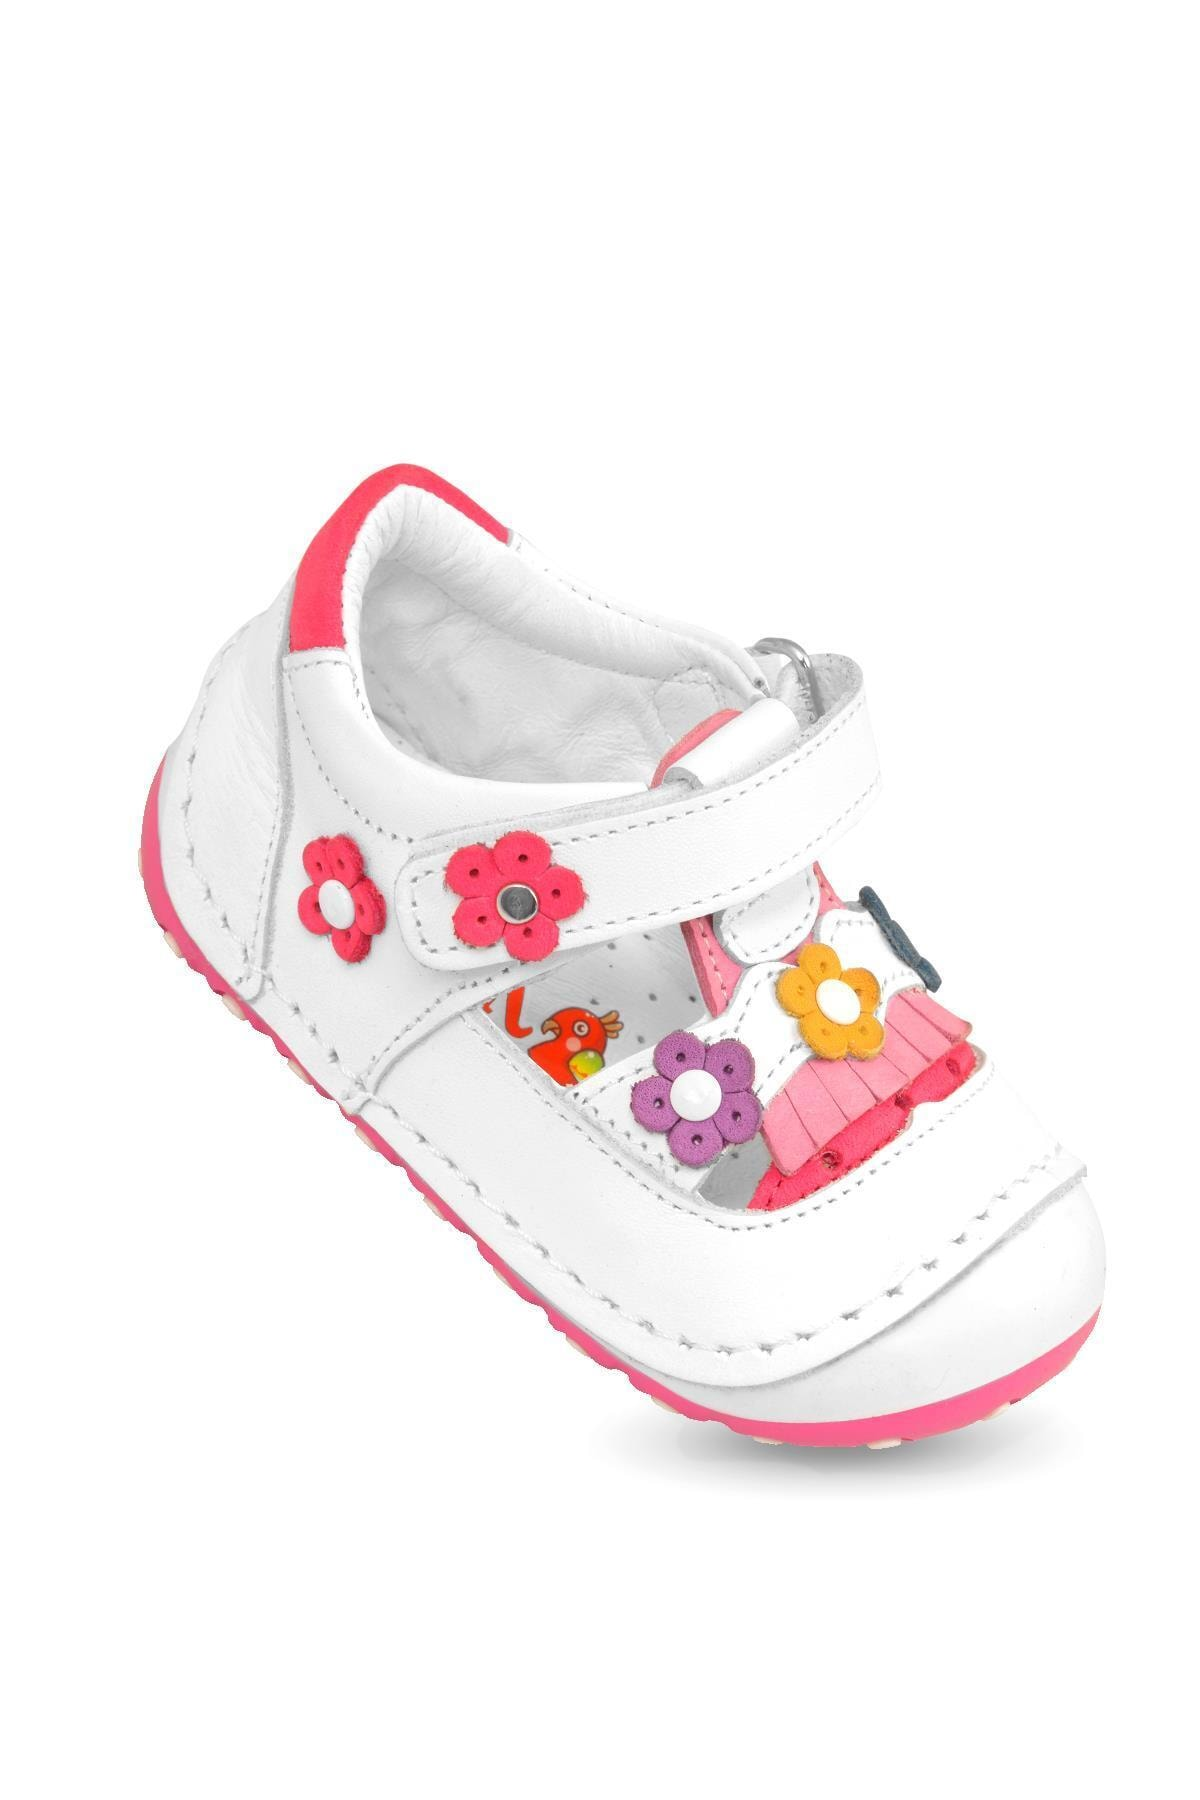 Flaneur Baby Girl Orthopedic Genuine Leather Booties Shoes 2021 Premium Quality